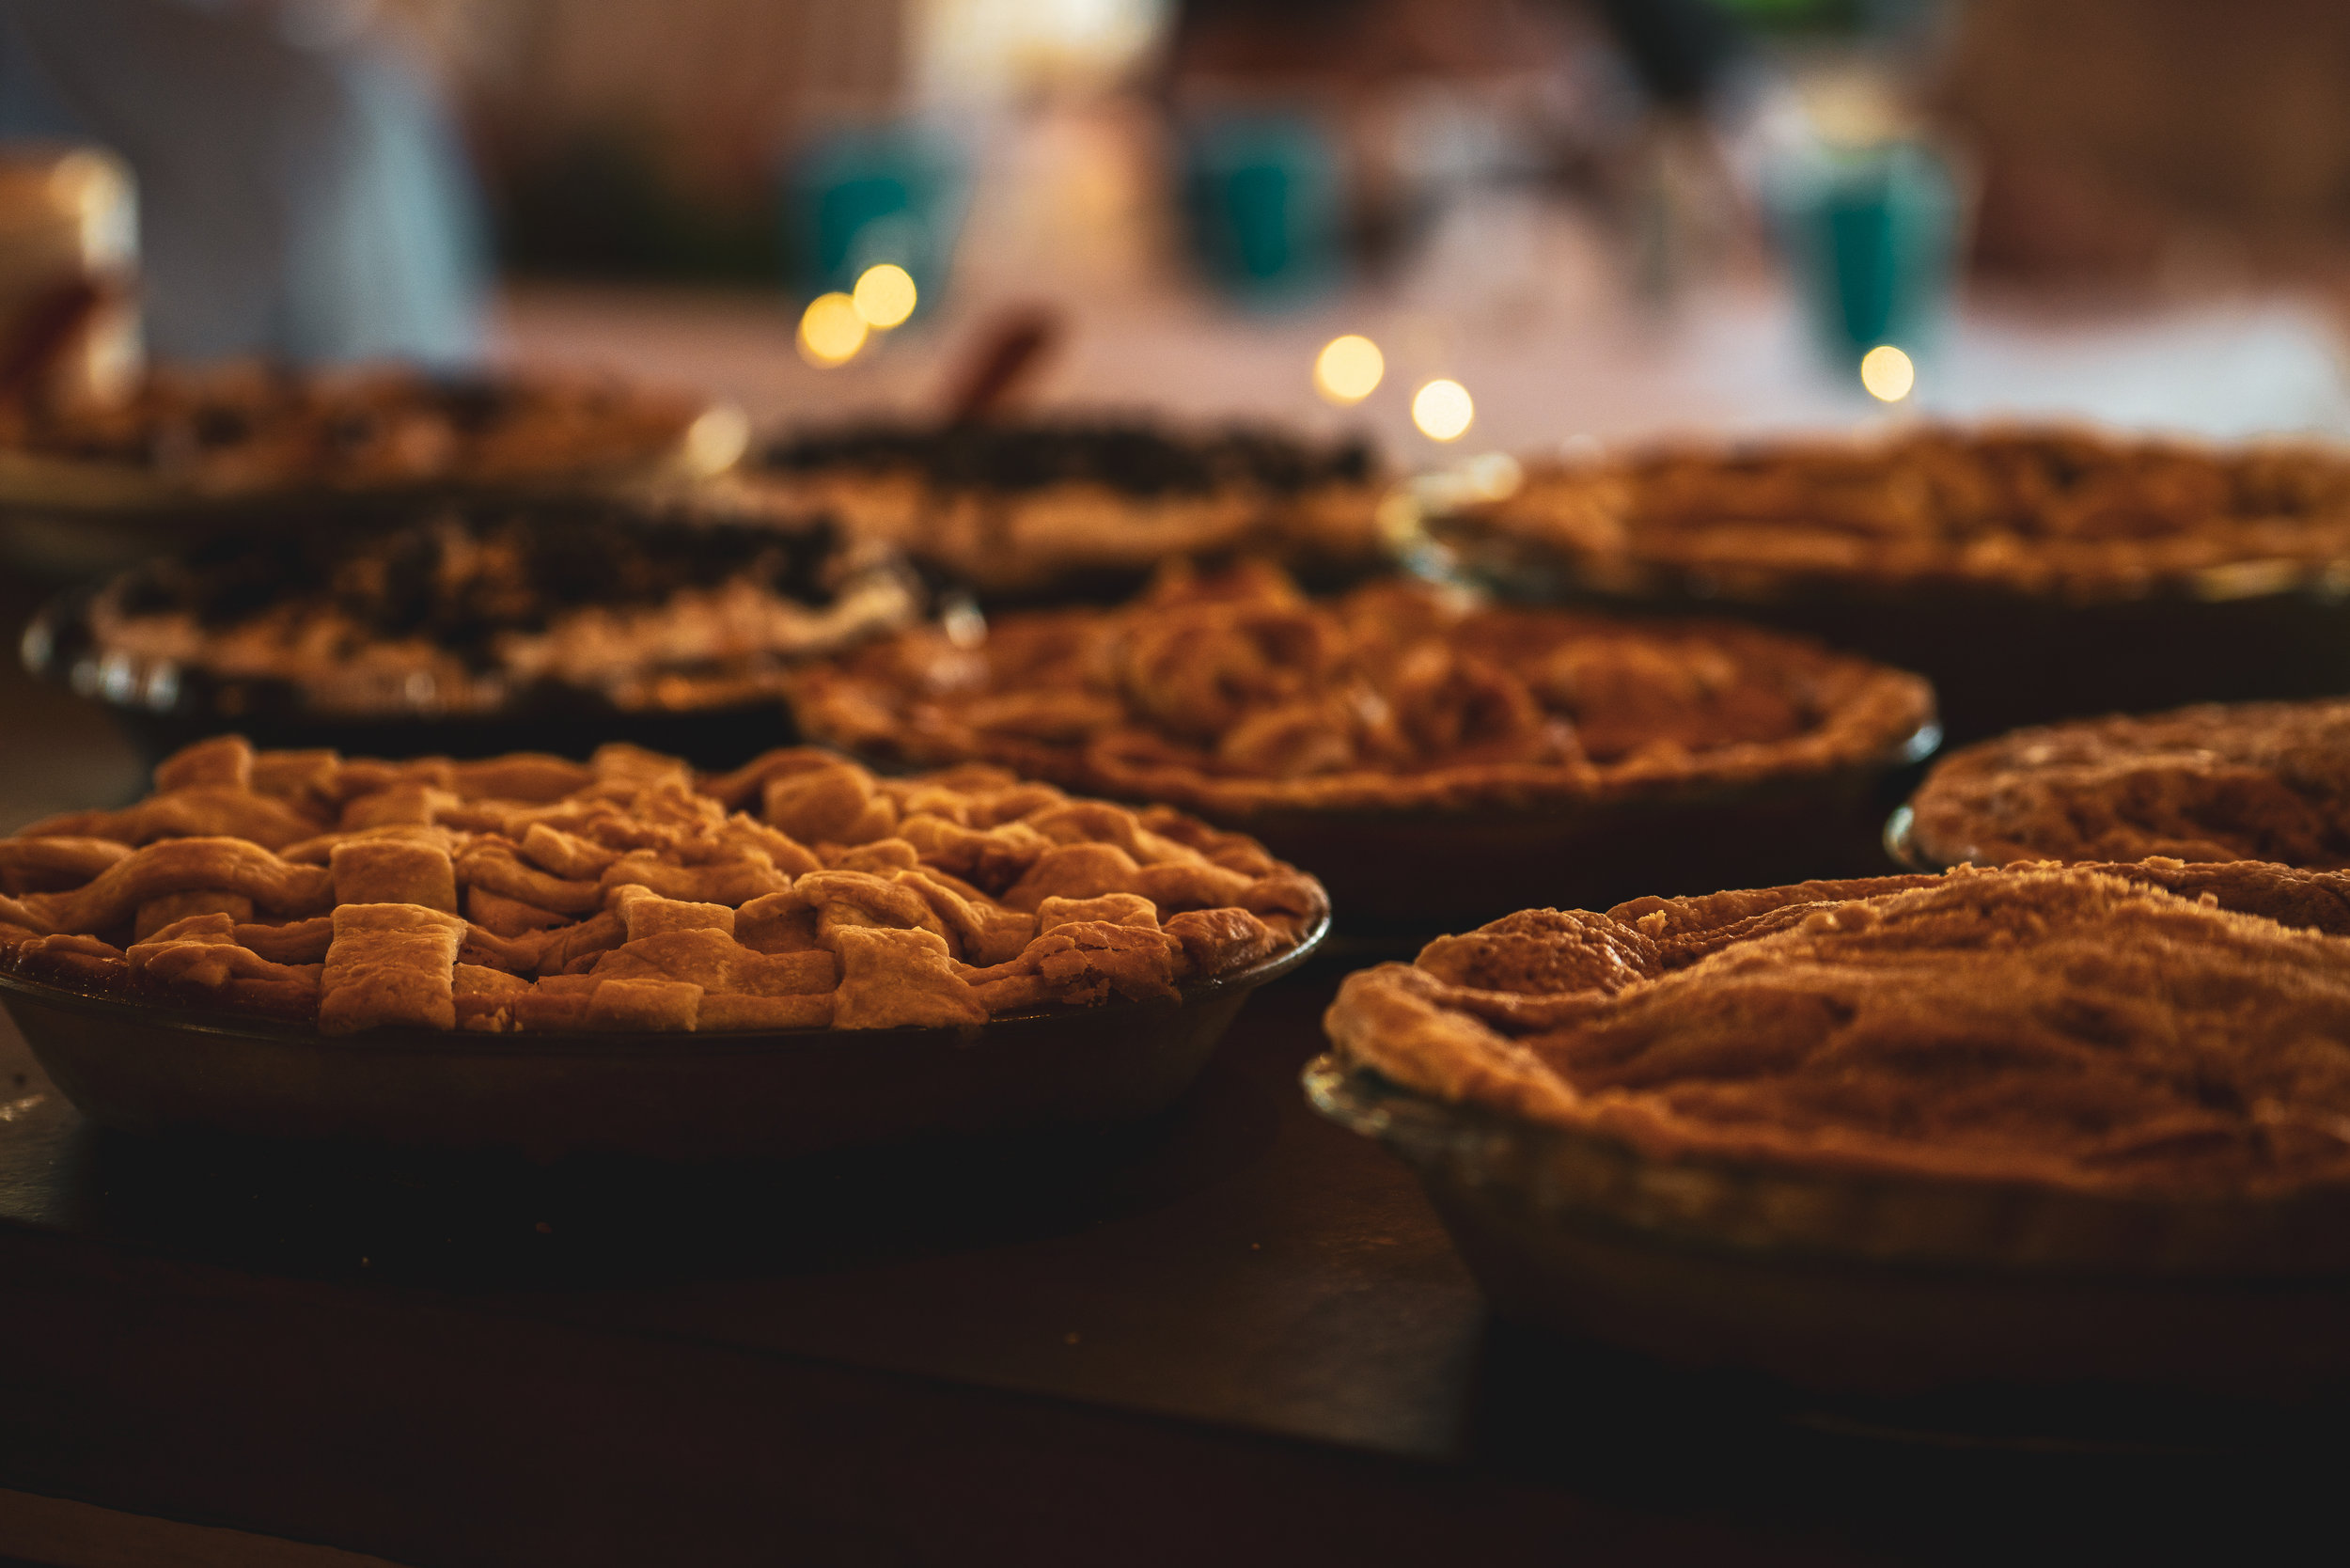 Pies served during the wedding reception in Lewistown, Montana